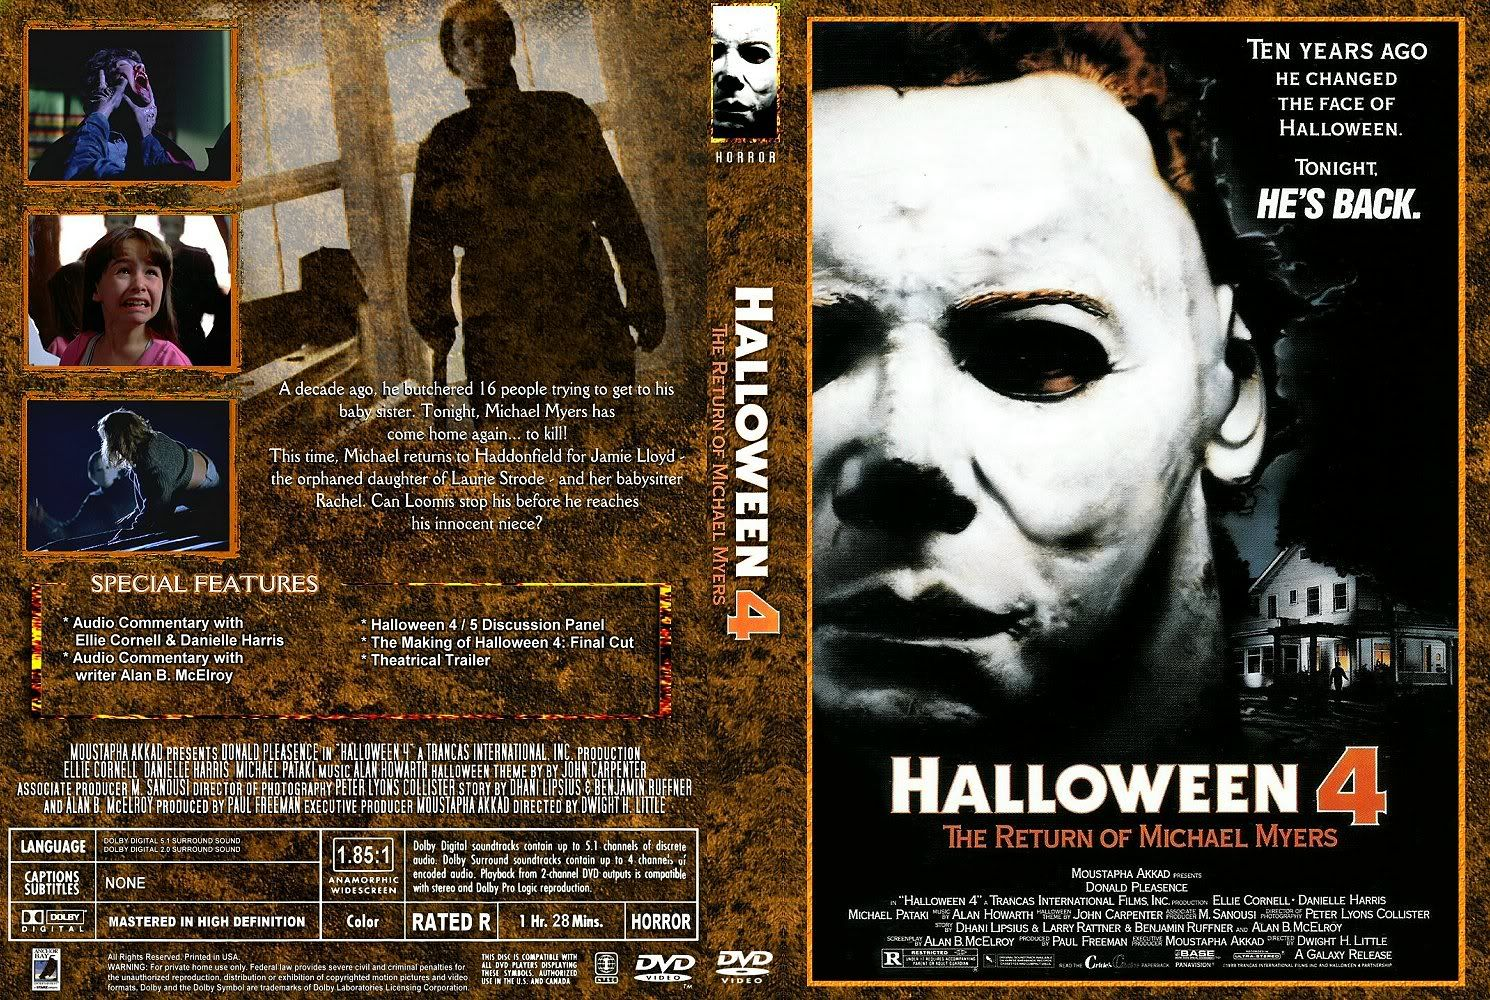 halloween 4: the return of michael myers (1988) dvd cover